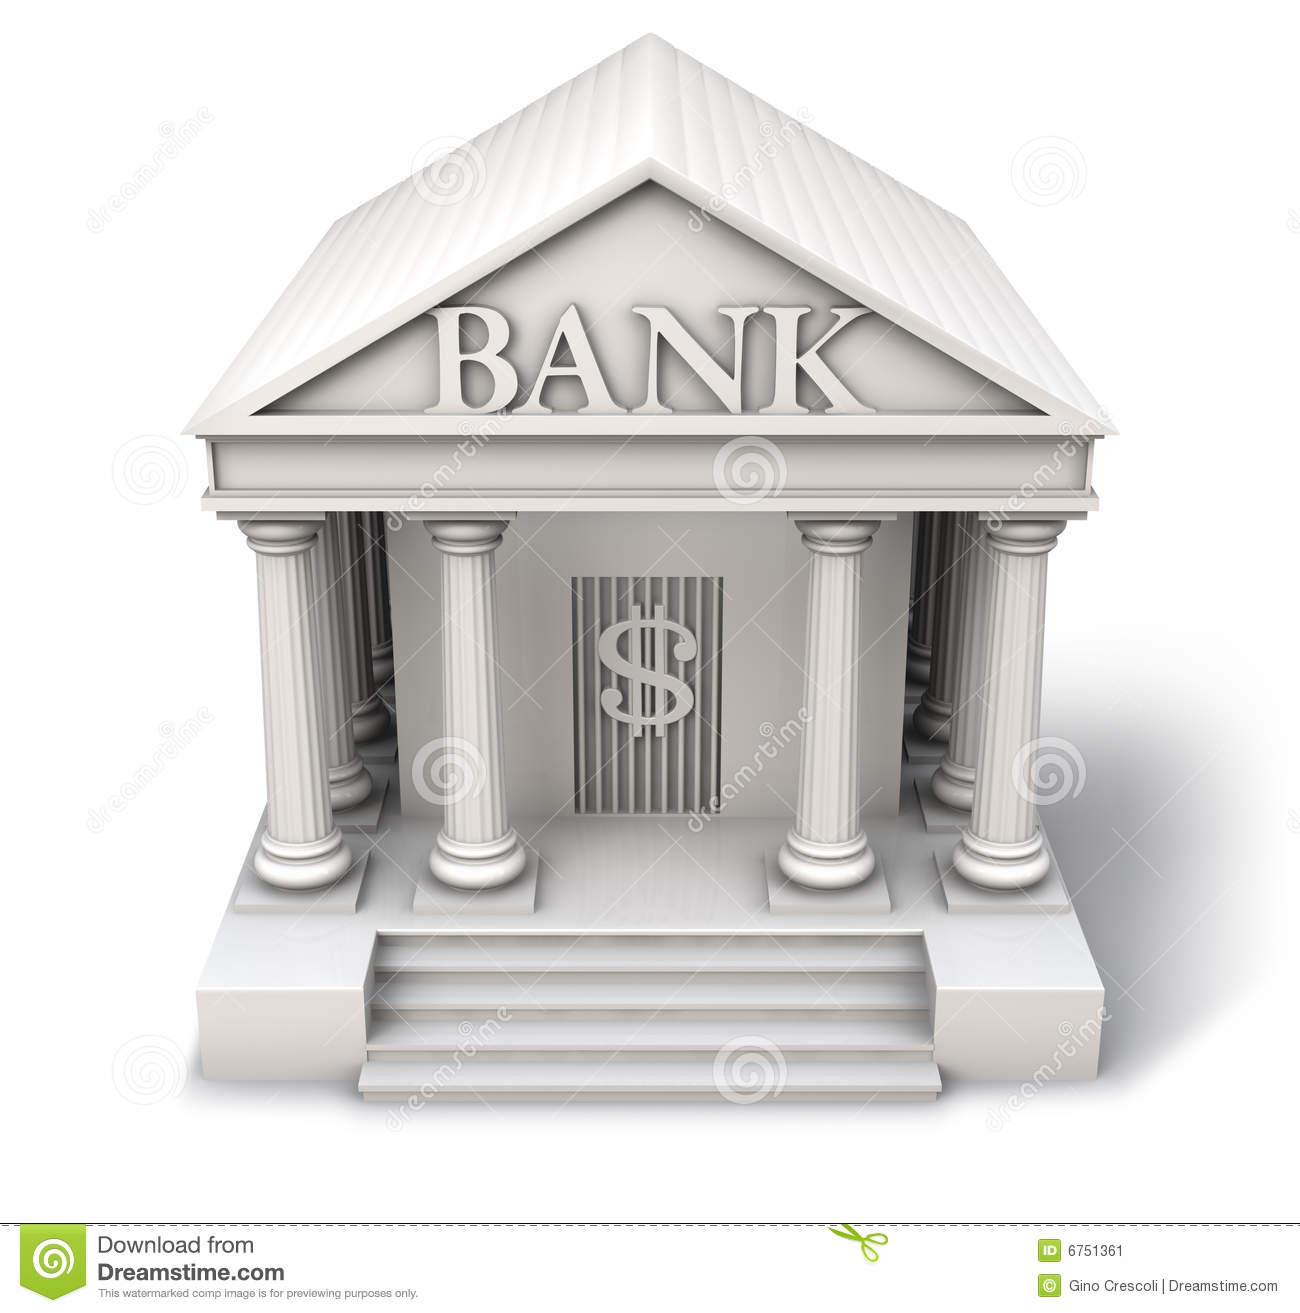 bank stock illustrations 115 581 bank stock illustrations